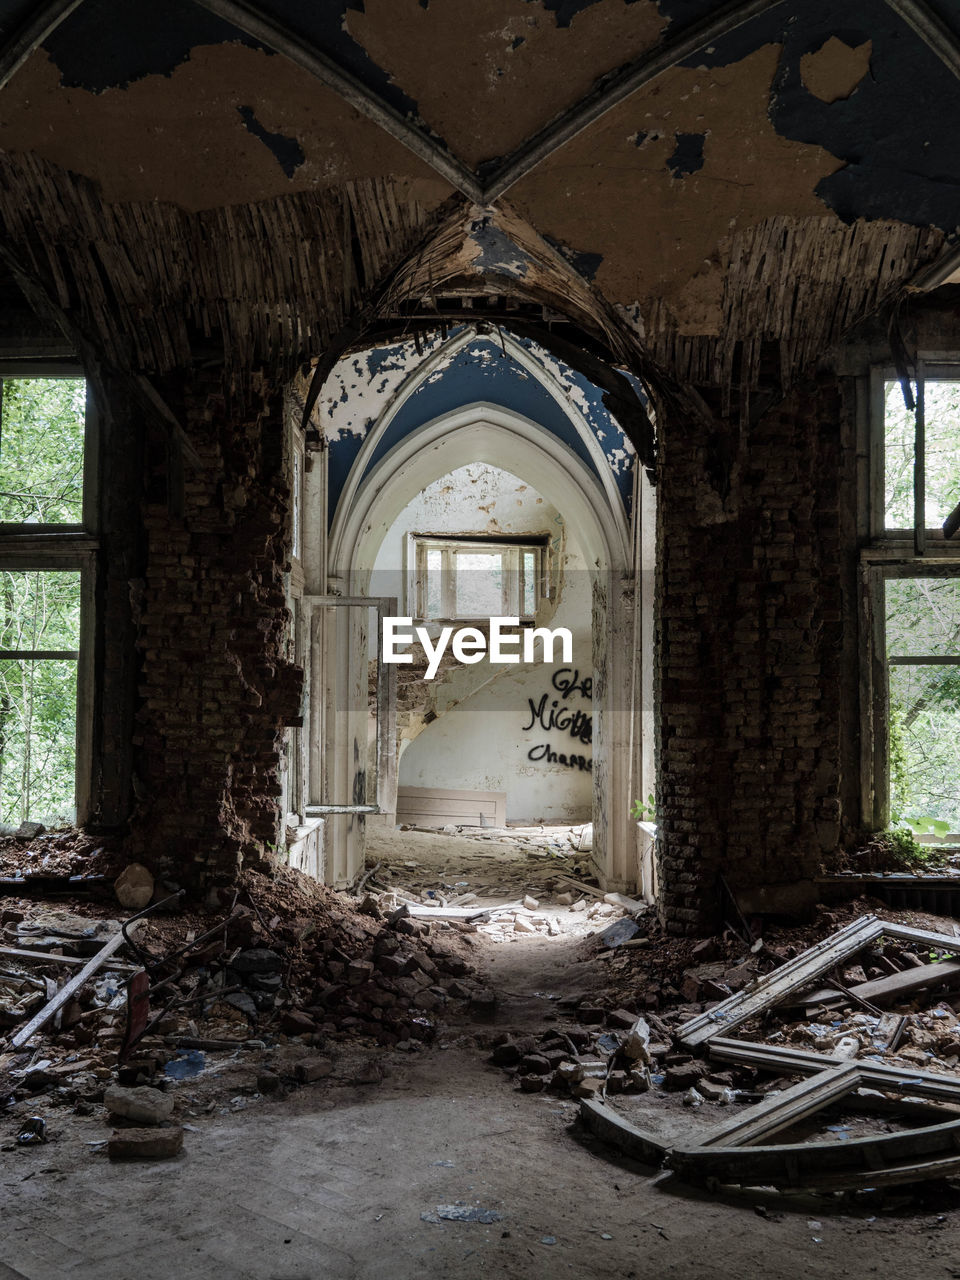 architecture, abandoned, building, damaged, indoors, built structure, window, day, no people, obsolete, house, run-down, dirt, destruction, old, messy, history, ruined, bad condition, dirty, deterioration, ceiling, demolished